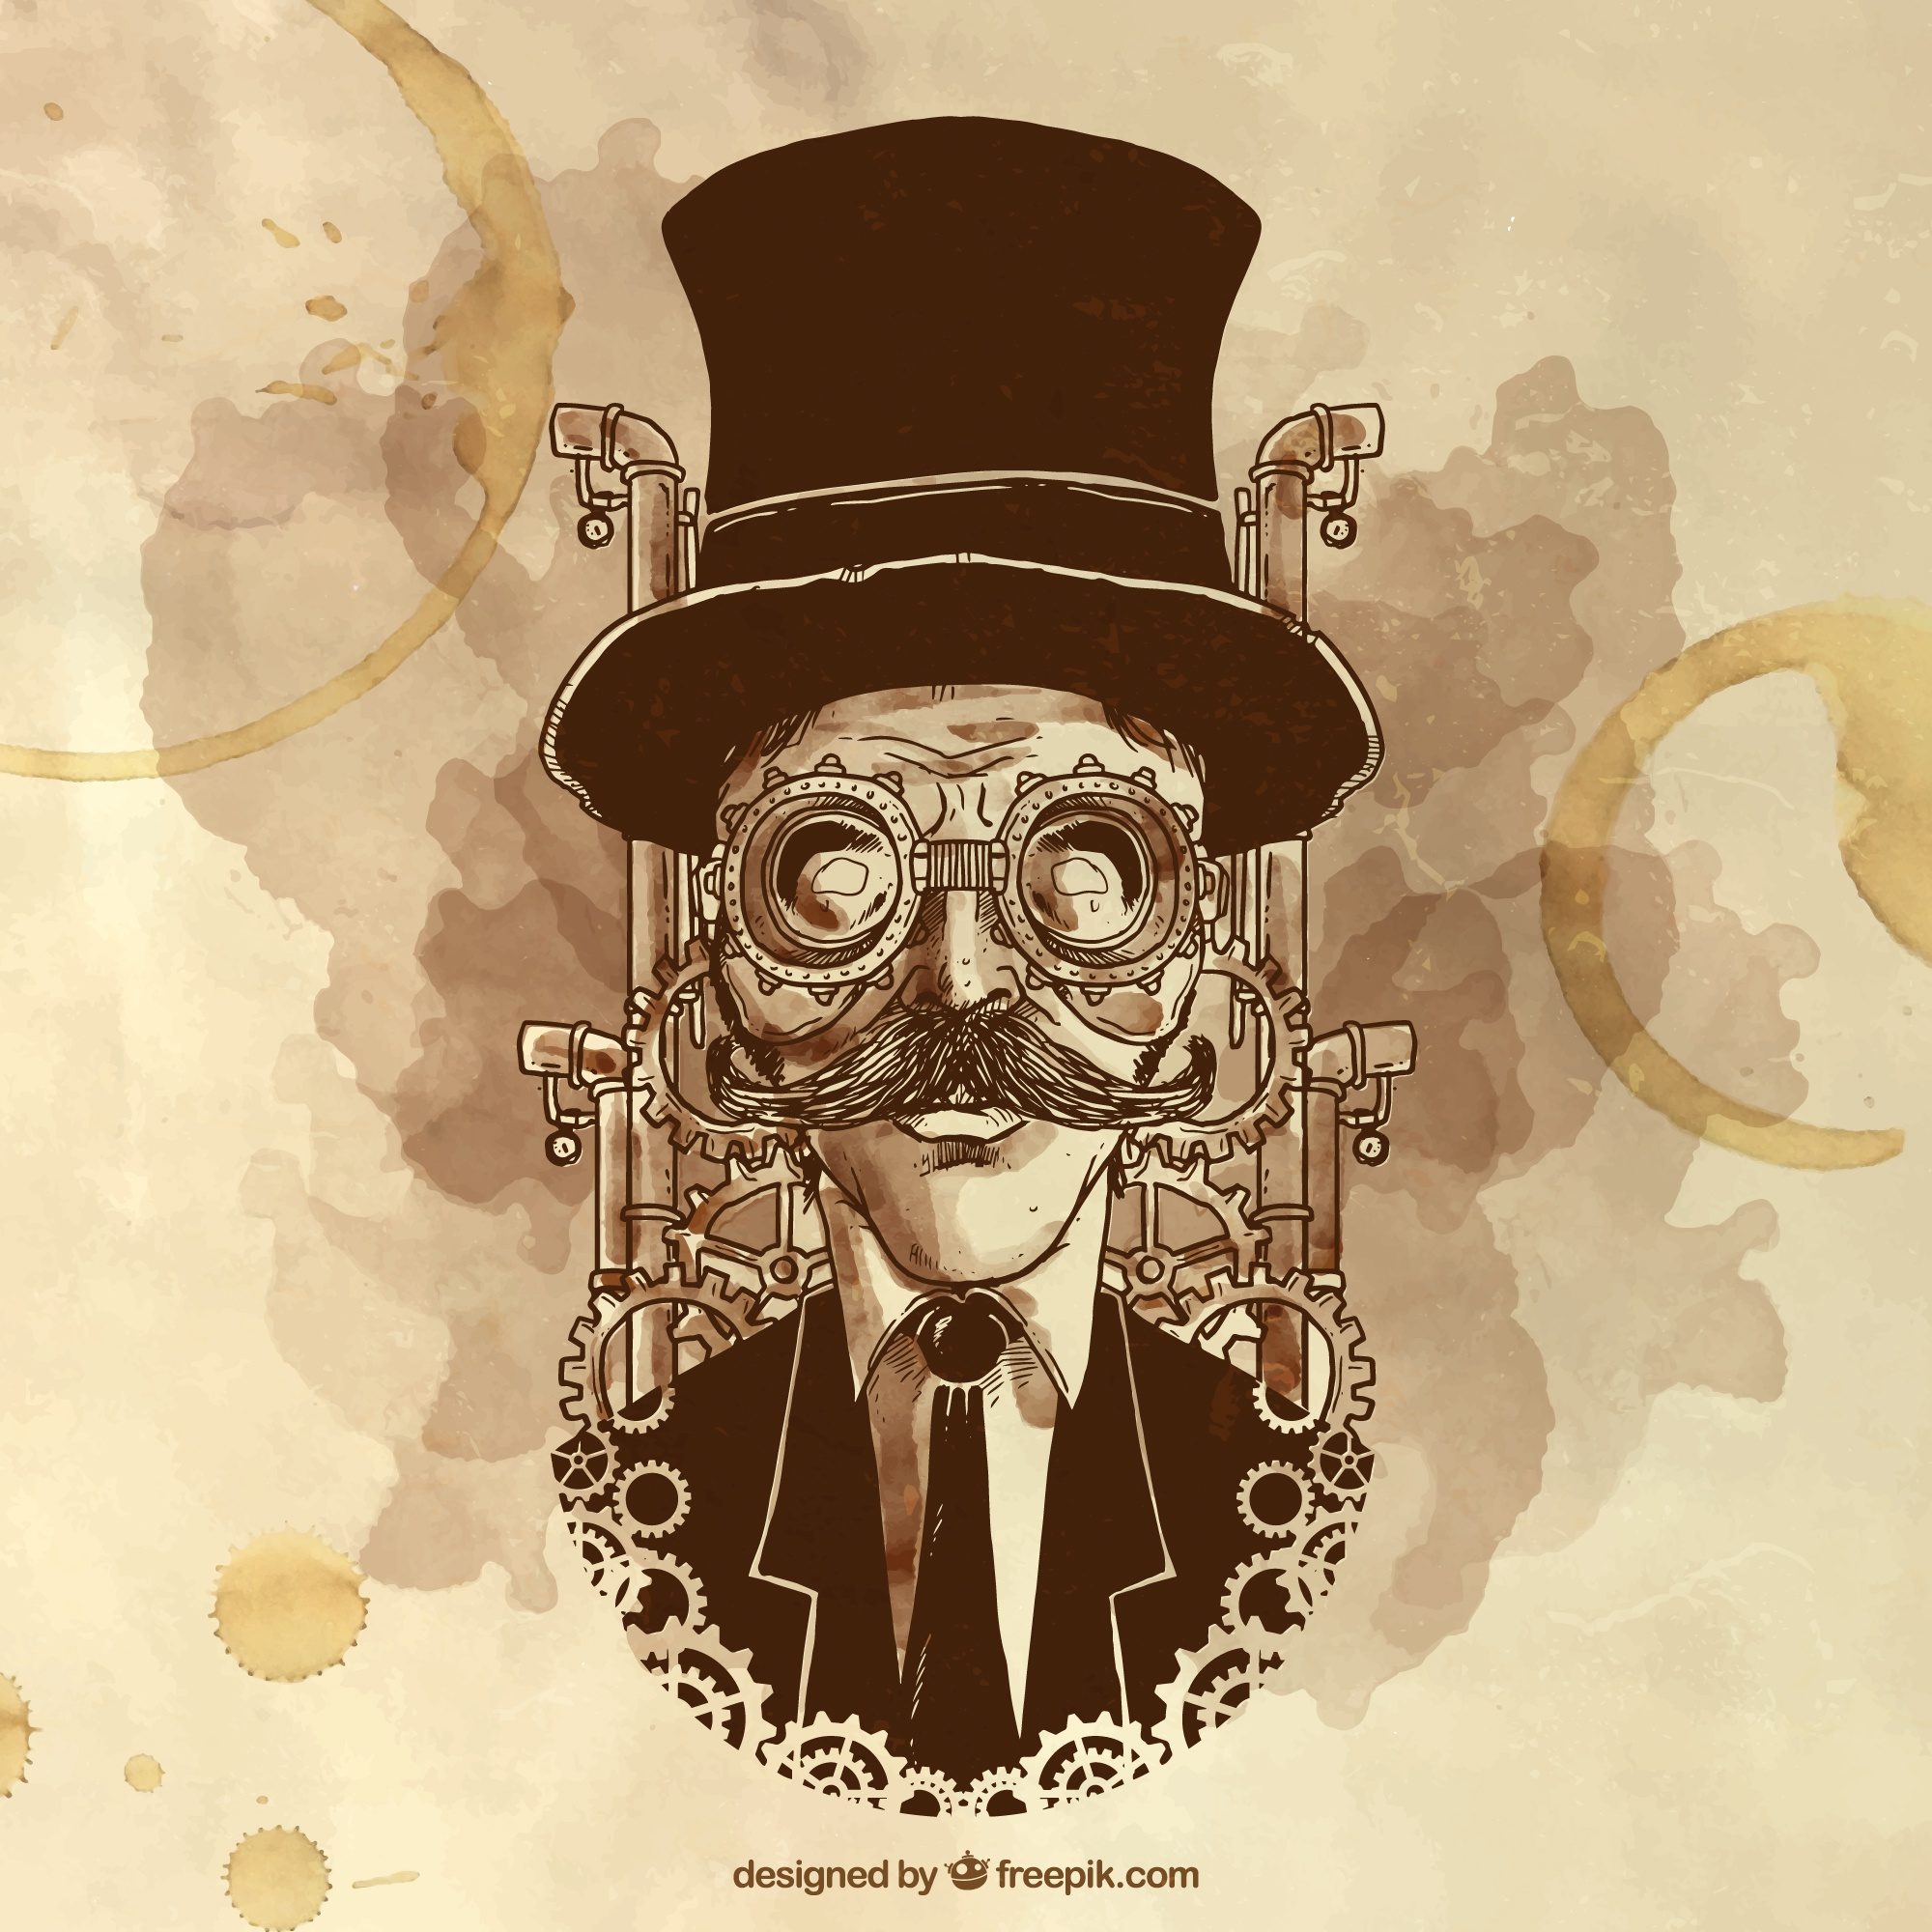 Hand painted steampunk man illustration